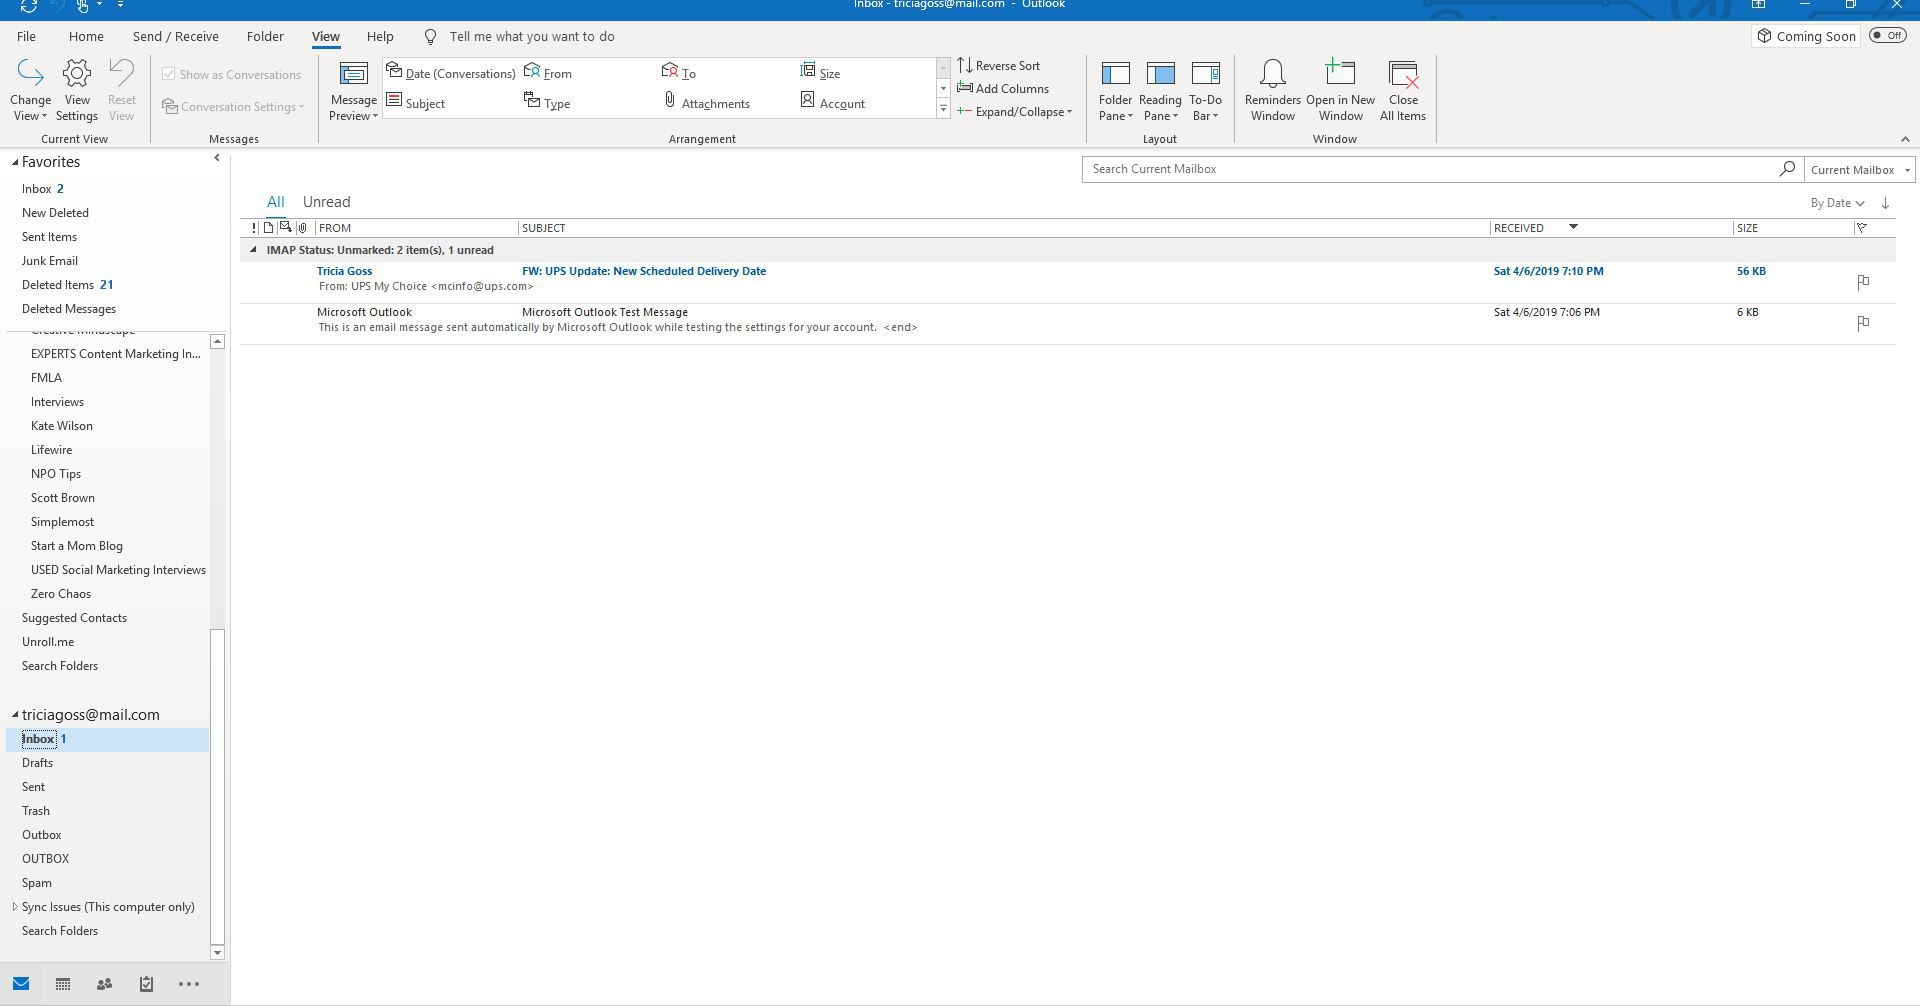 Hiding Strikethrough Messages in Outlook